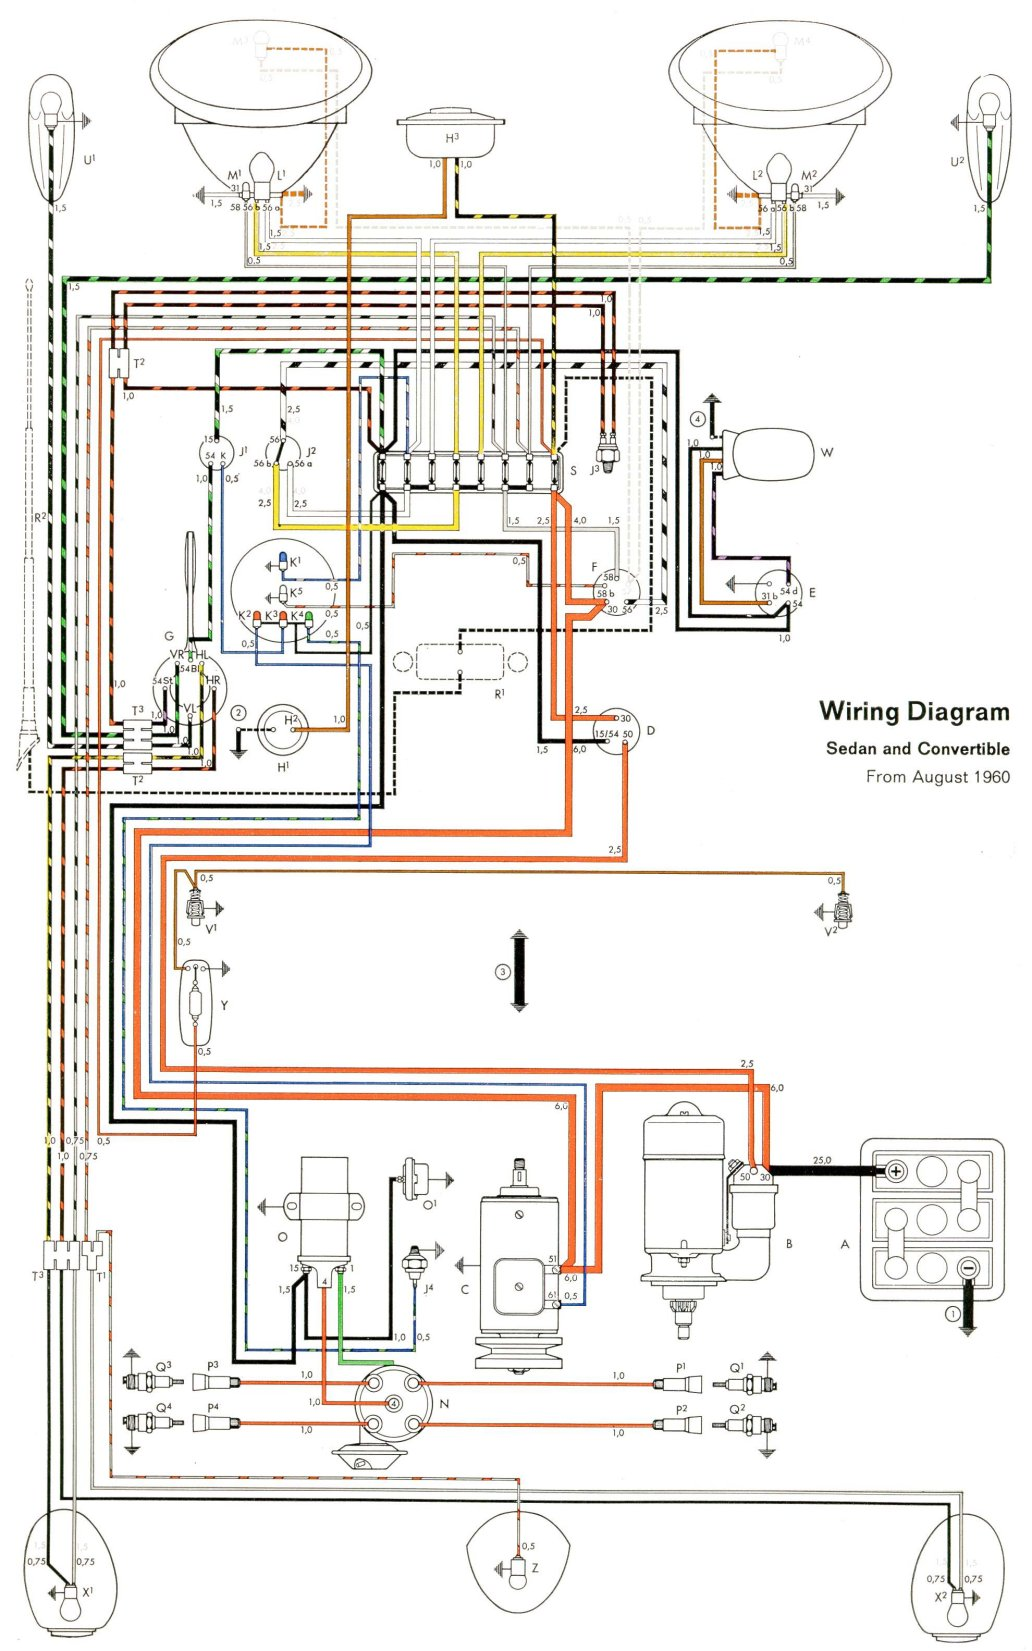 bug_61 1949 vw wiring diagram on 1949 download wirning diagrams 1960 vw bus wiring diagram at fashall.co